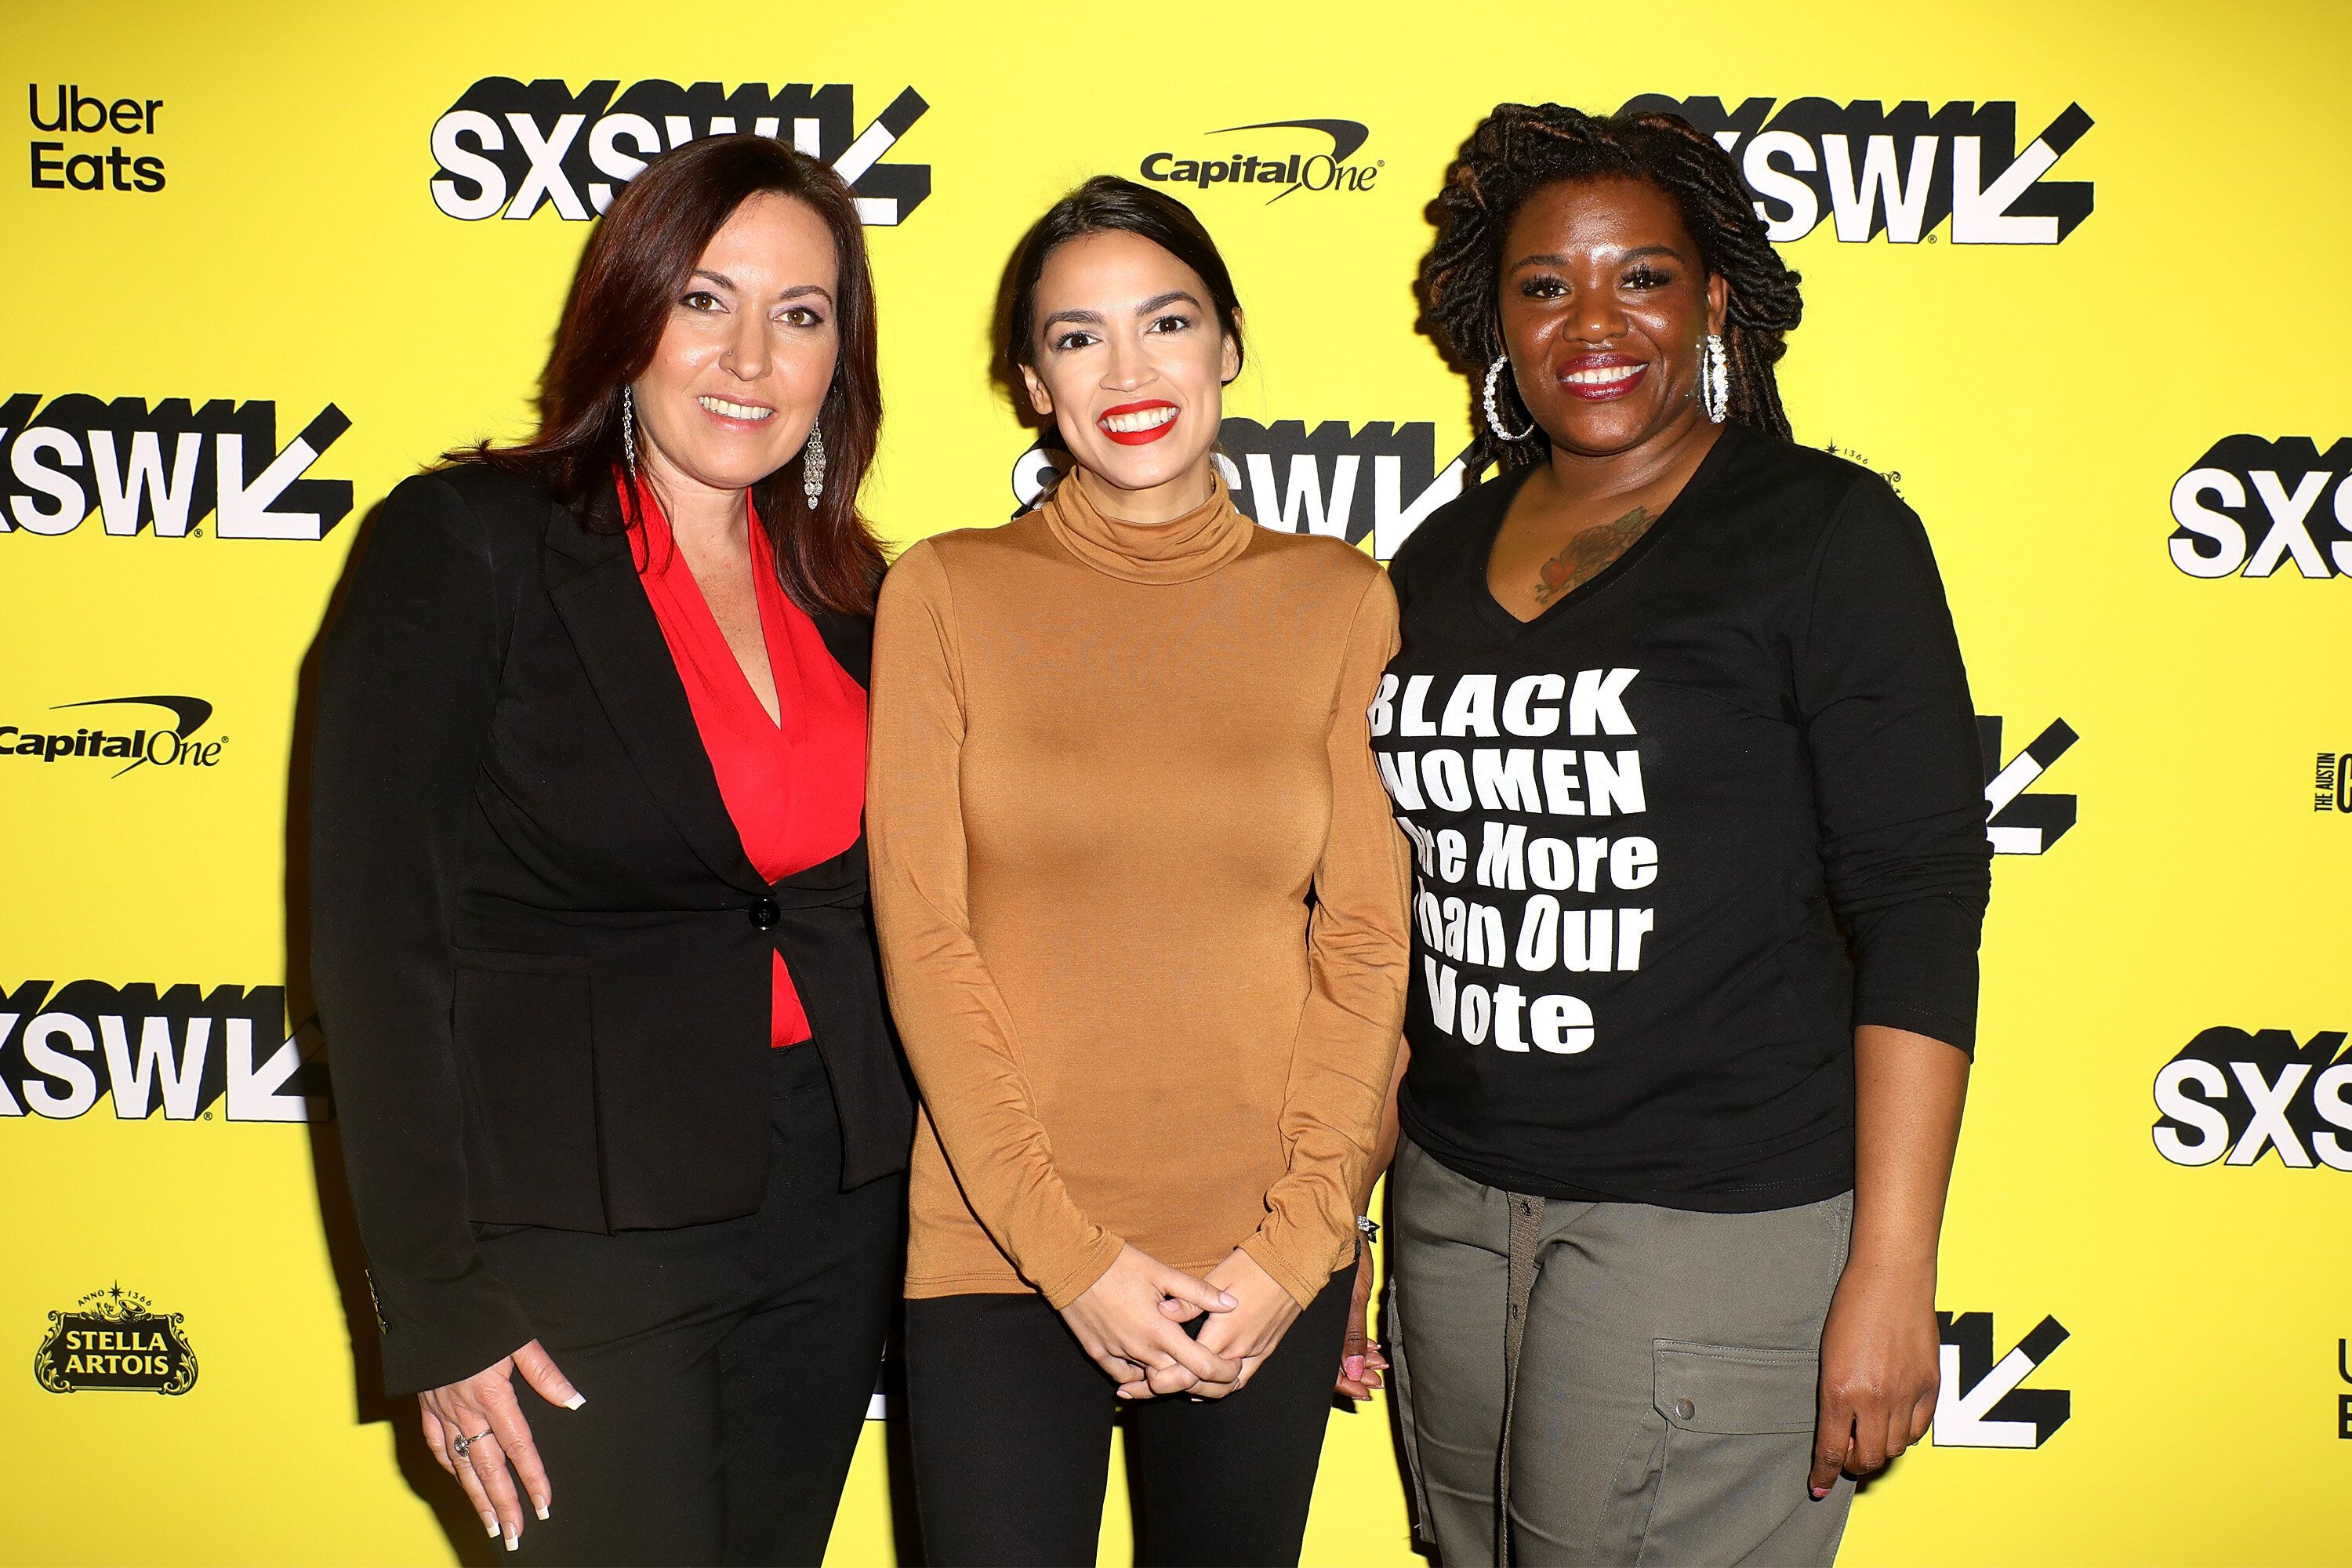 """Cori Bush, right, joins Amy Vilela, left, and Rep. Alexandria Ocasio-Cortez (D-N.Y.) at the premiere of the documentary """"Knoc"""